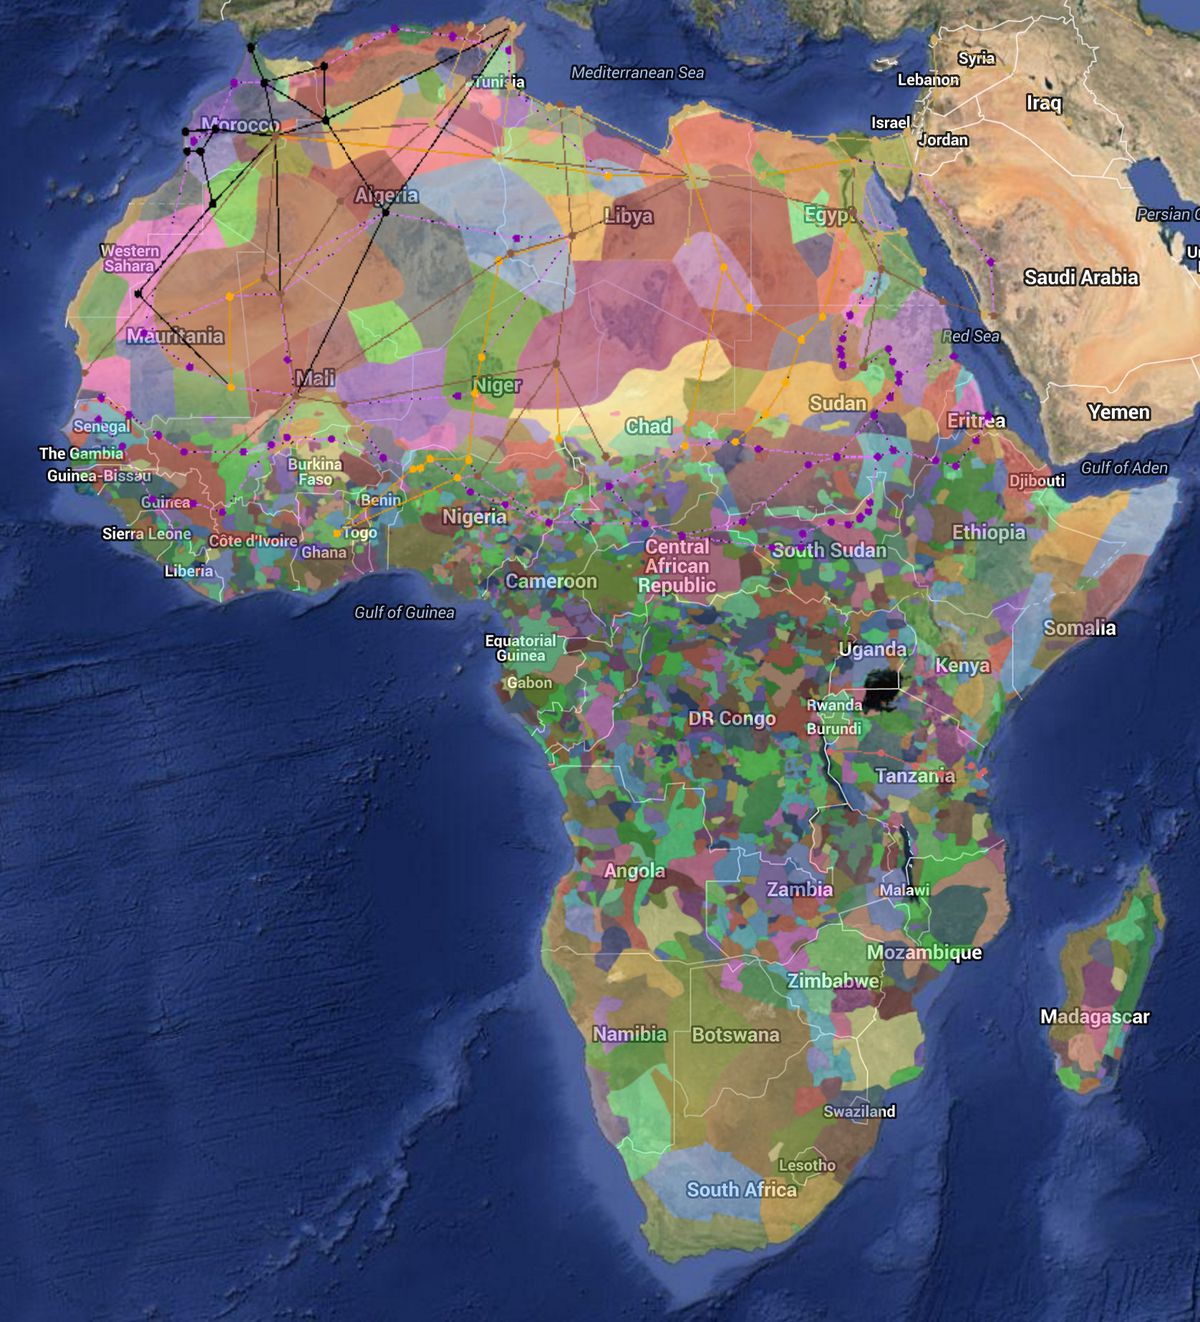 A fascinating color coded map of africas diversity vox harvard university peoples atlas of africa ed marc leo felix gumiabroncs Image collections